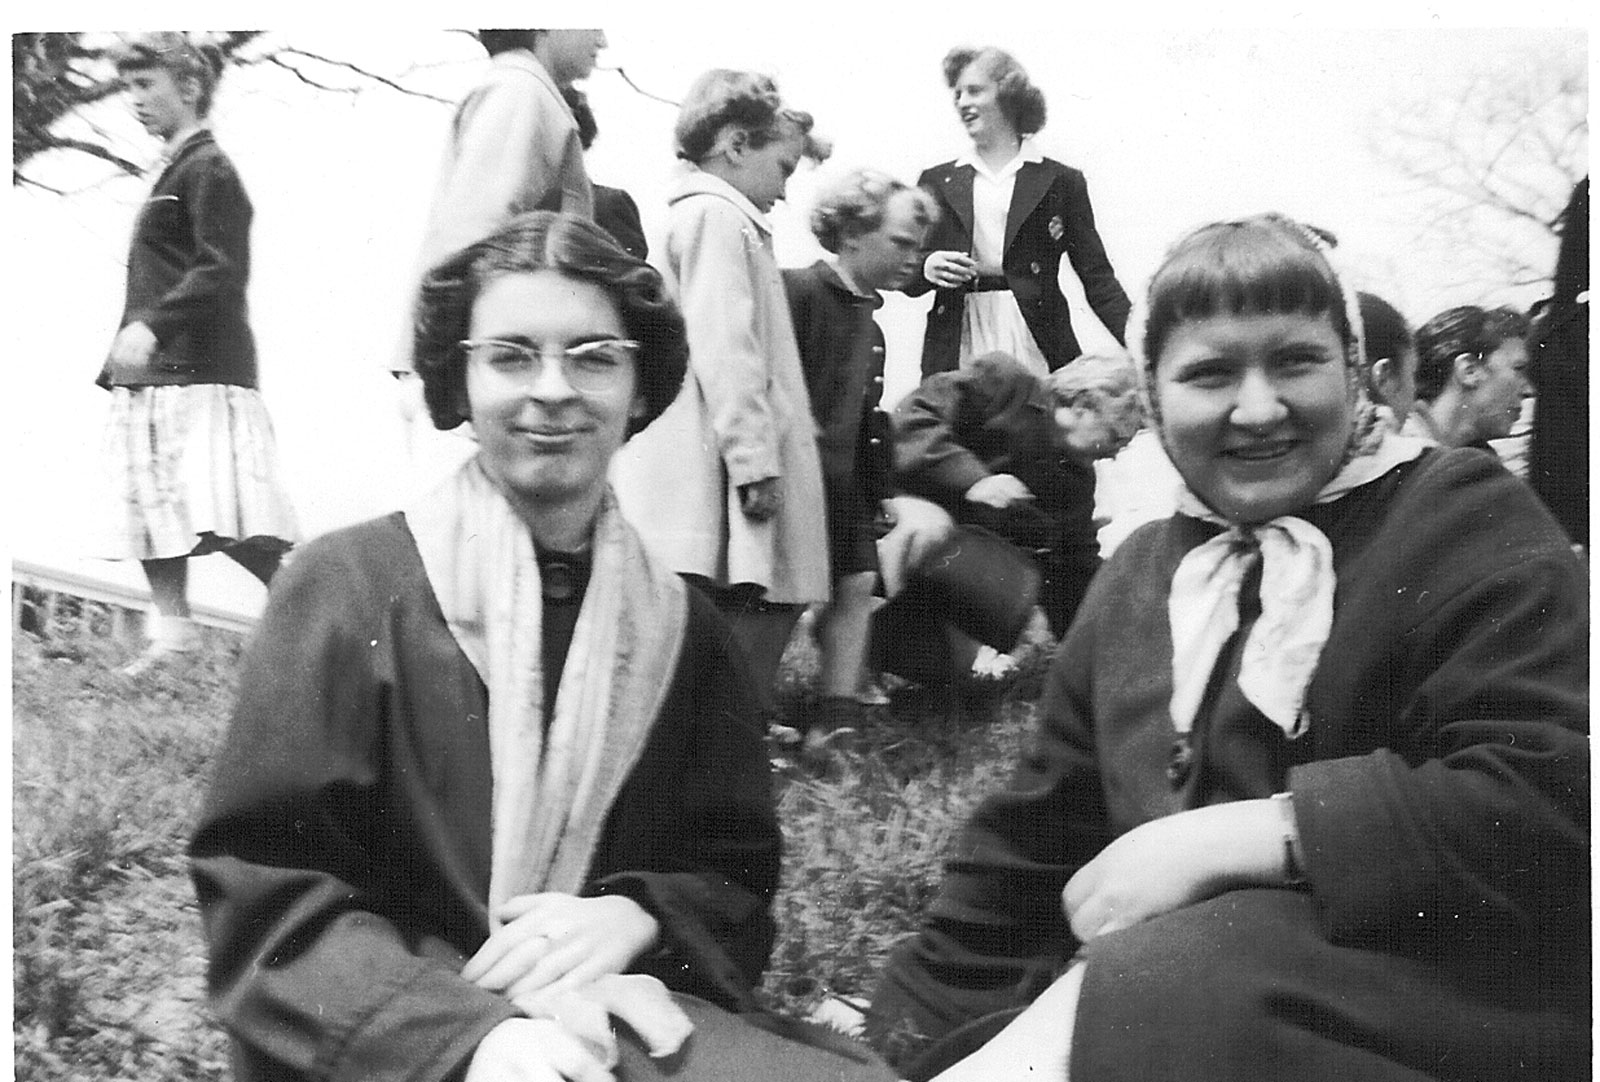 K-12 students in Parry Sound, in the late 1950s. Courtesy the Rosseau Historical Society.